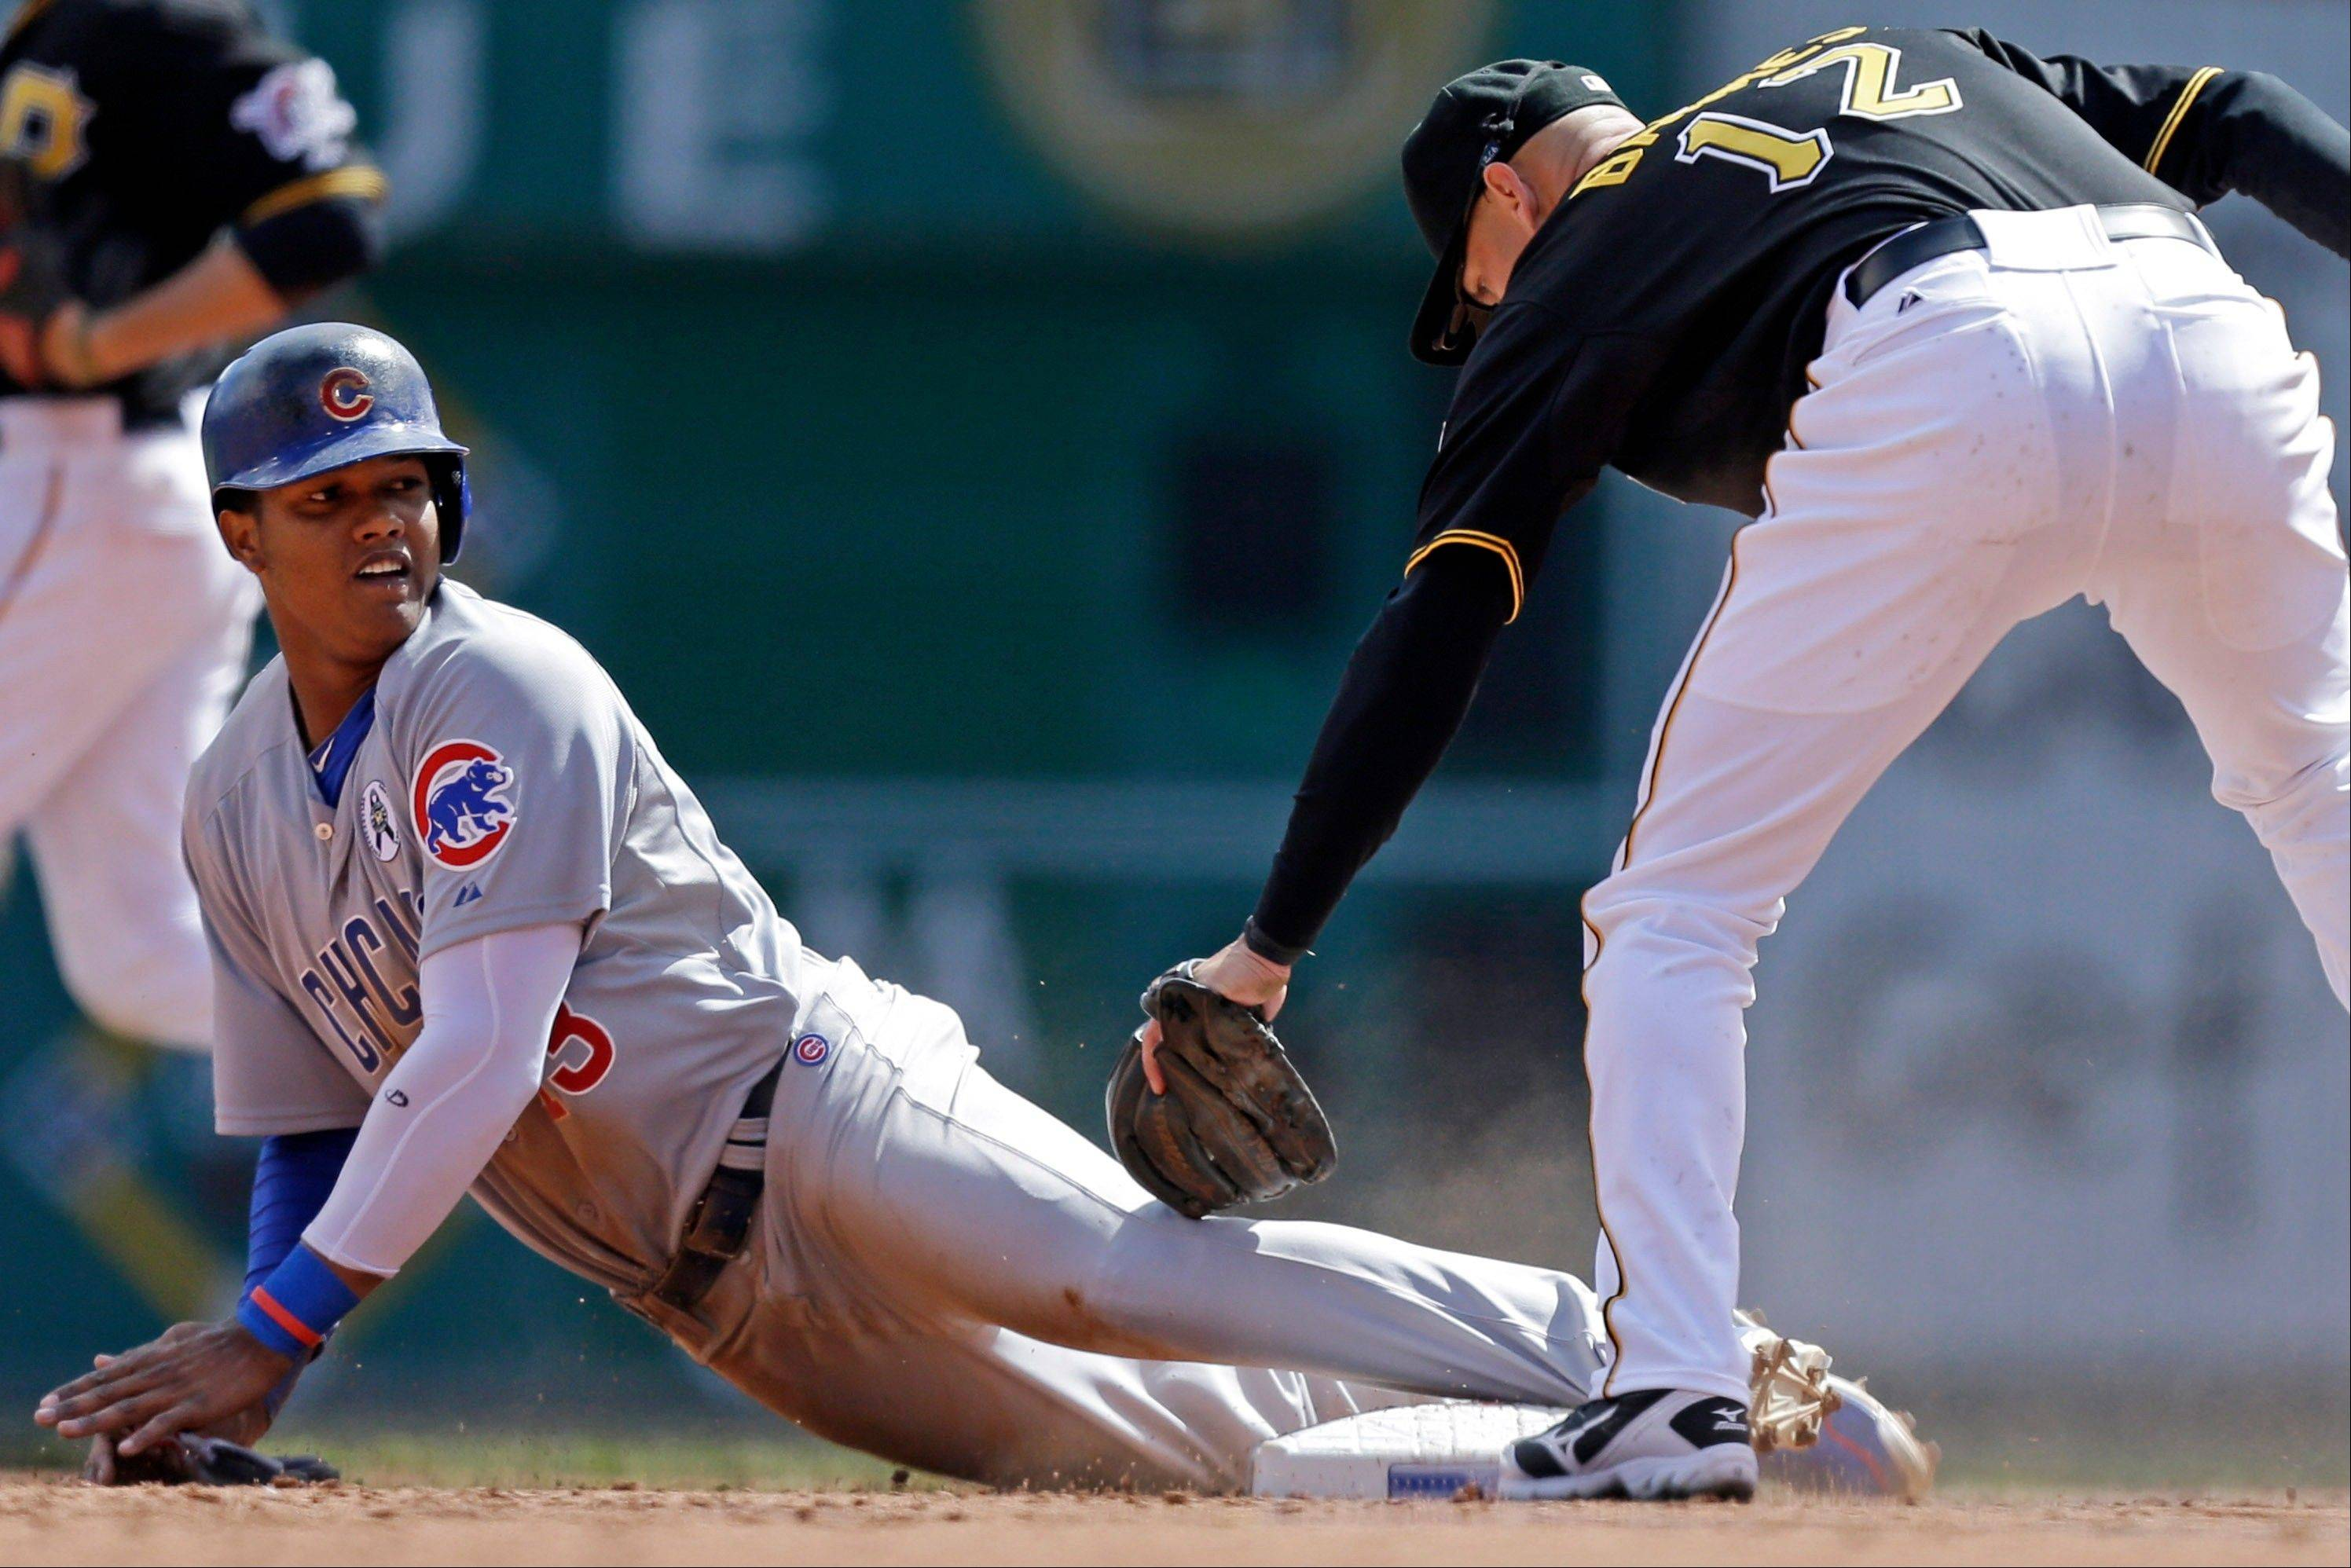 Starlin Castro (13) steals second base as Pittsburgh Pirates shortstop Clint Barmes (12) applies the late tag during the third inning of a baseball game in Pittsburgh Monday, April 1, 2013.